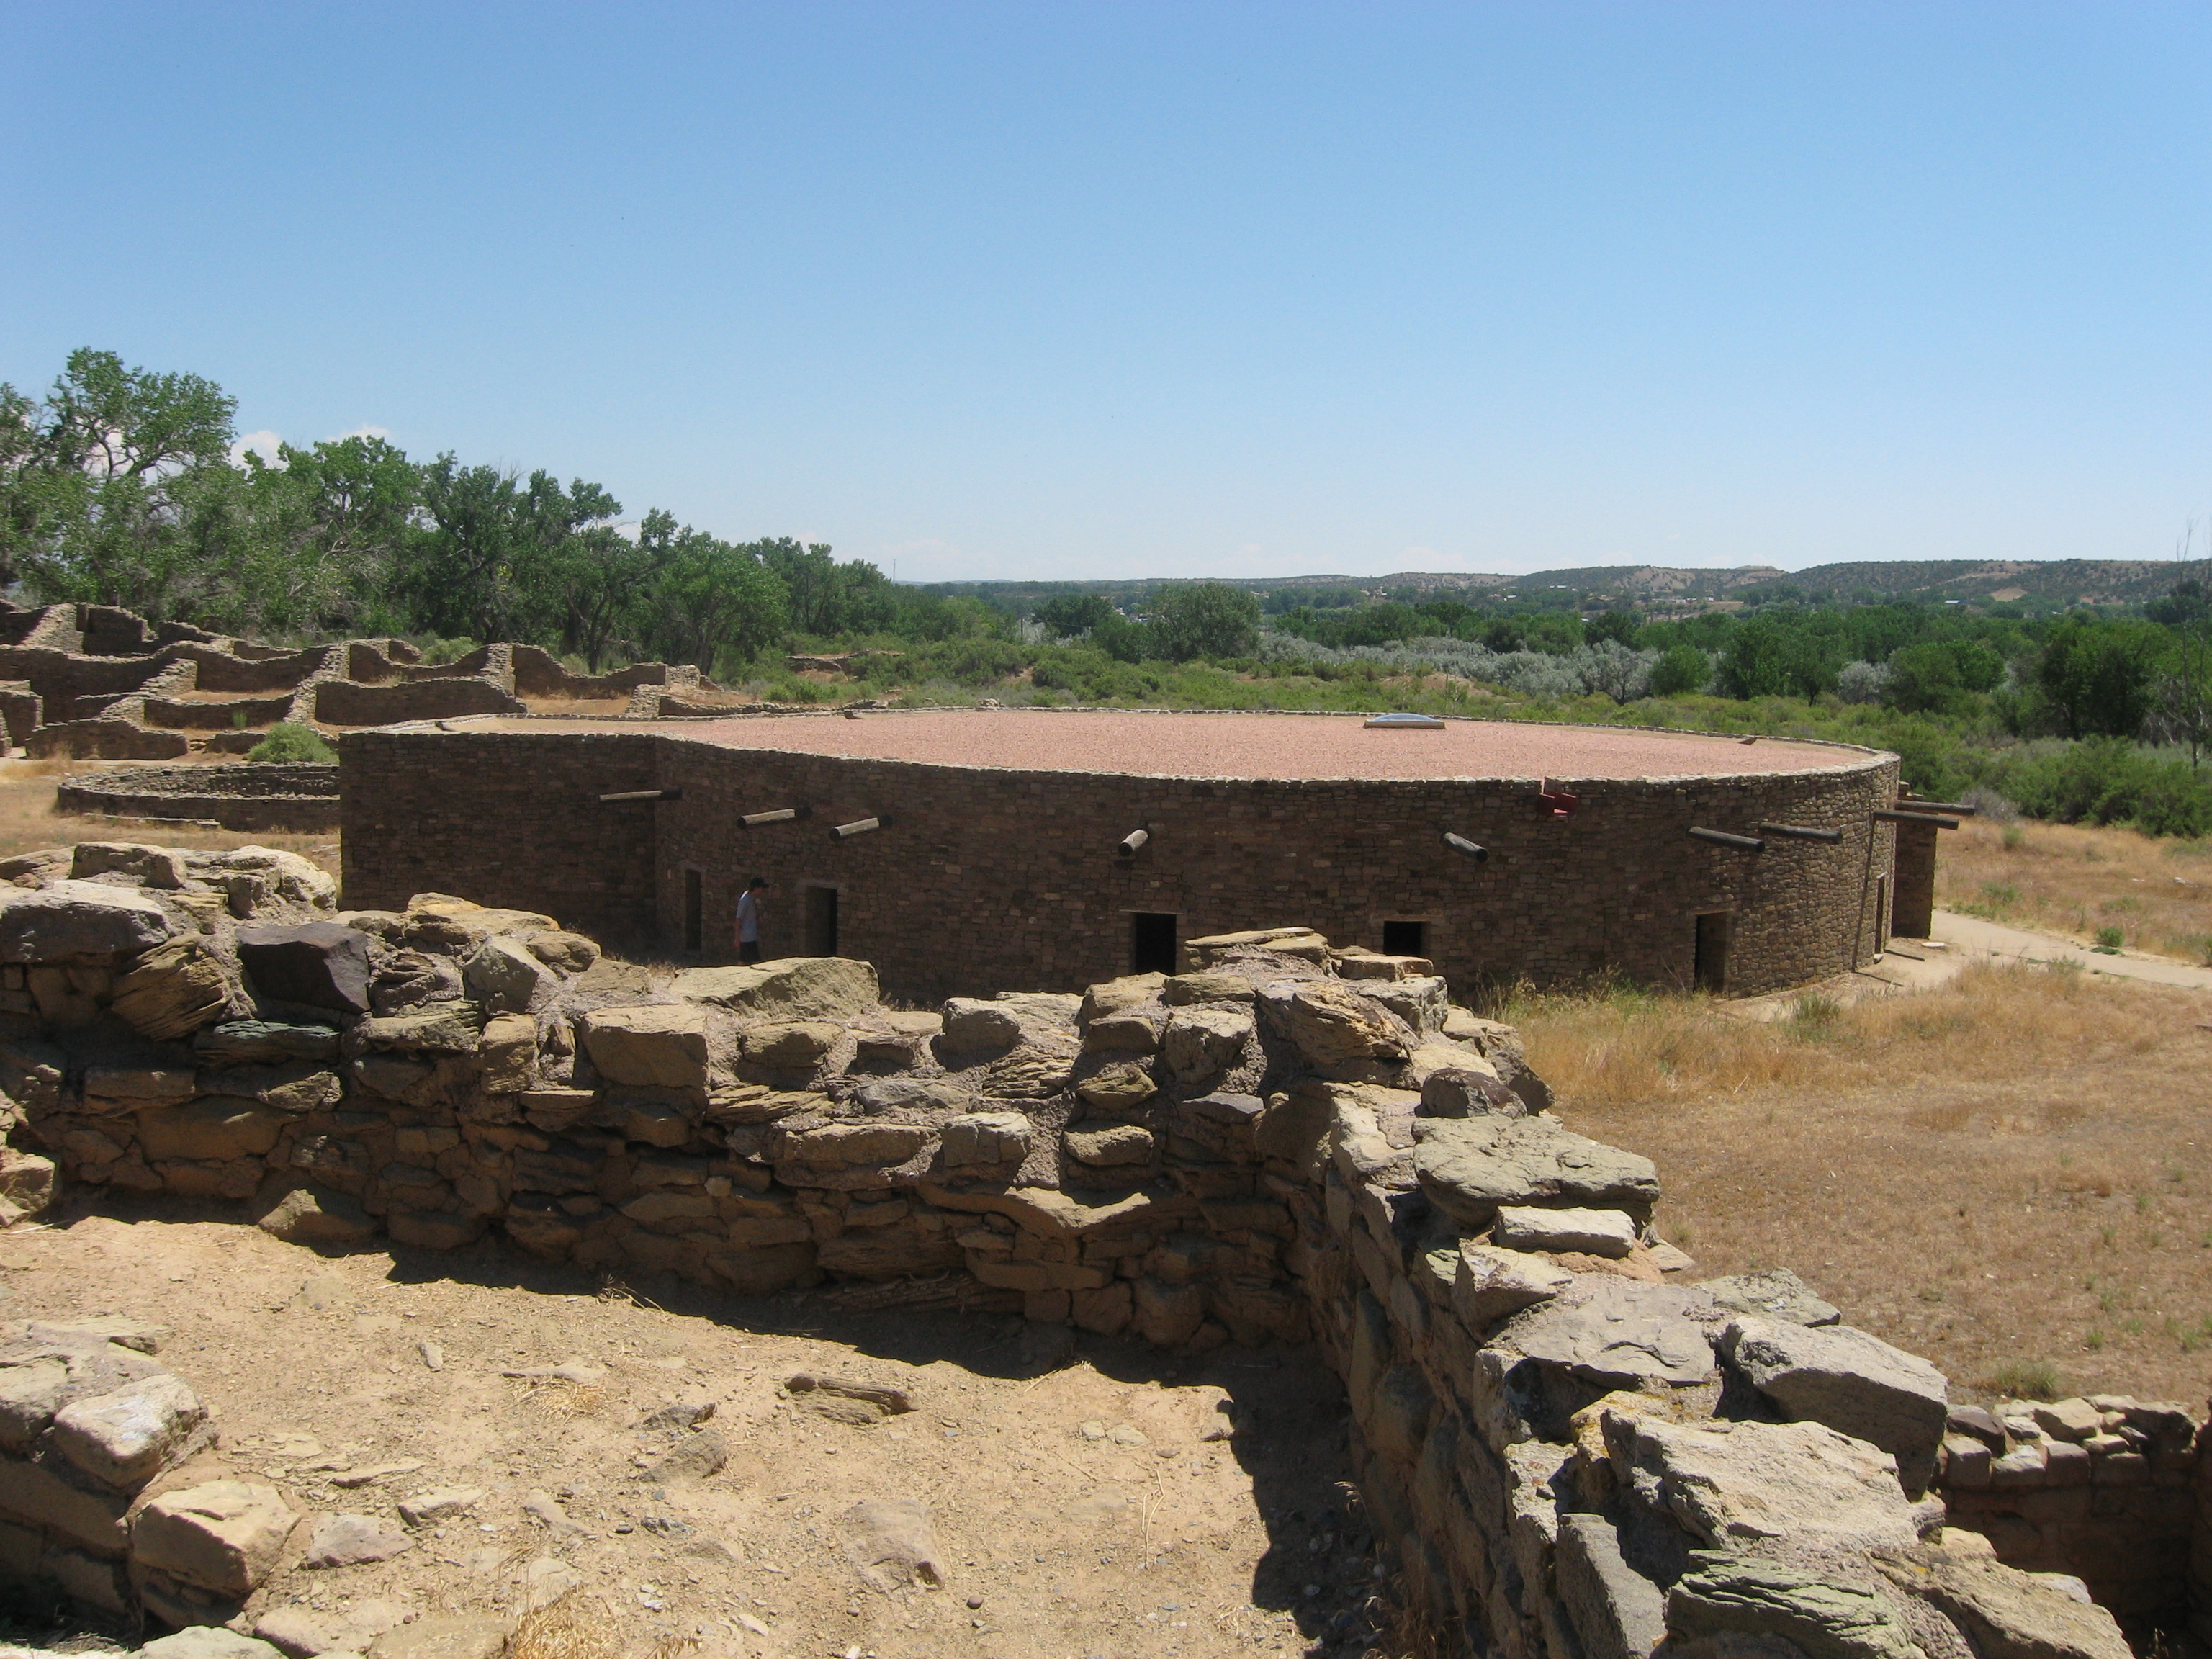 The Great Kiva at Aztec Ruins National Monument was excavated by Earl Morris in 1921 and reconstructed by him 13 years later.